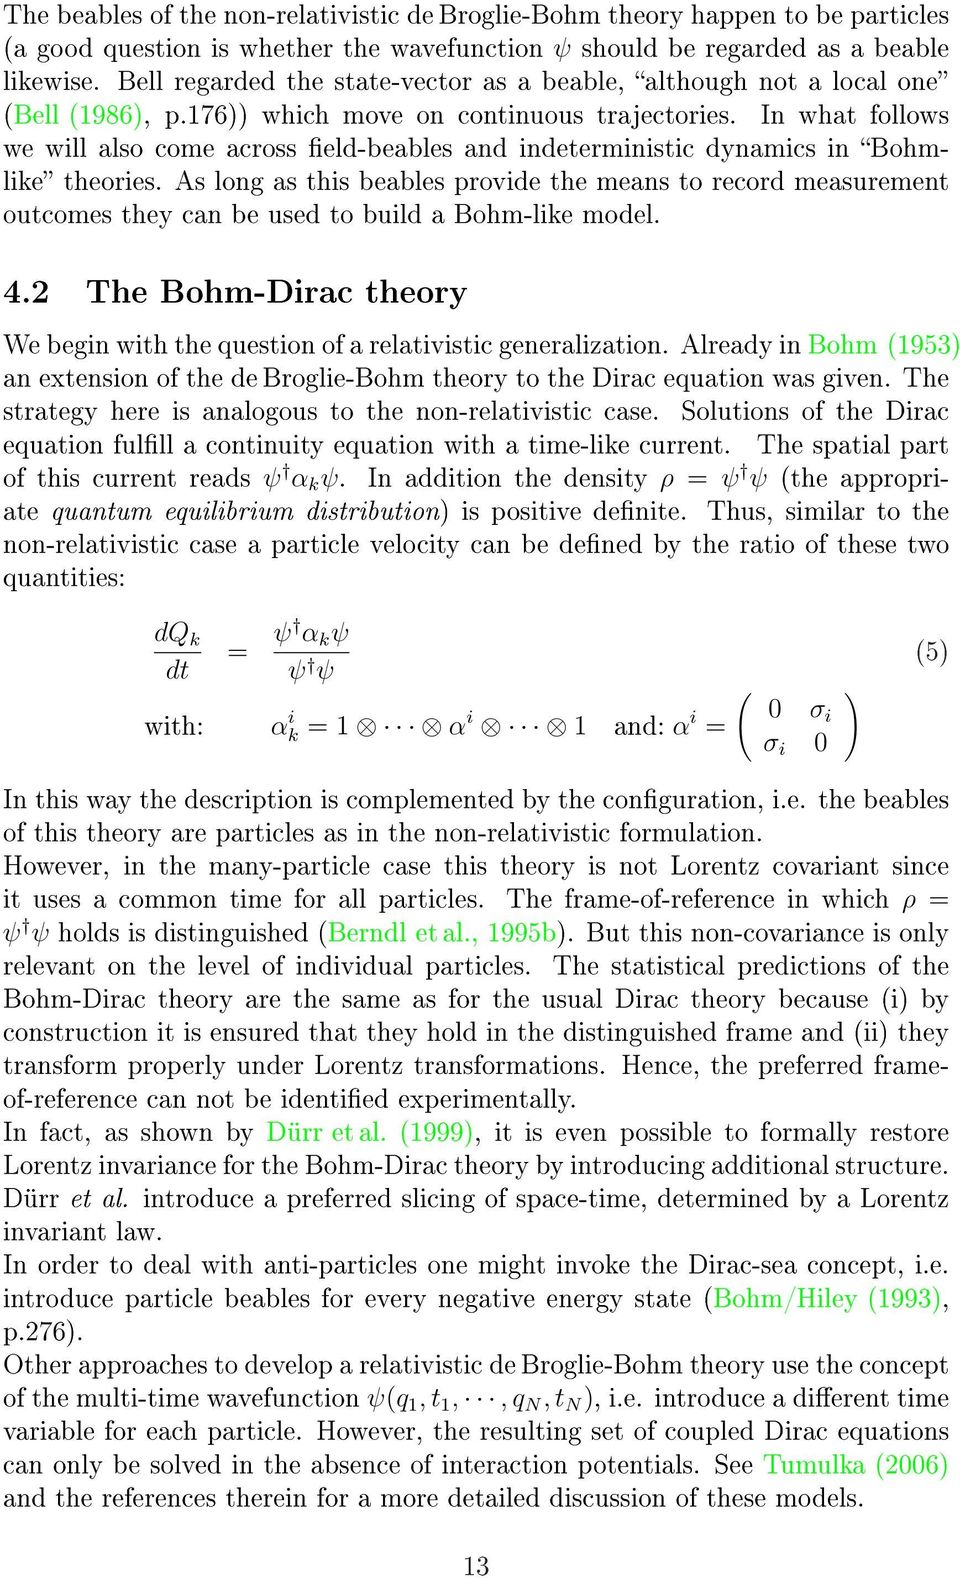 In what follows we will also come across eld-beables and indeterministic dynamics in Bohmlike theories.